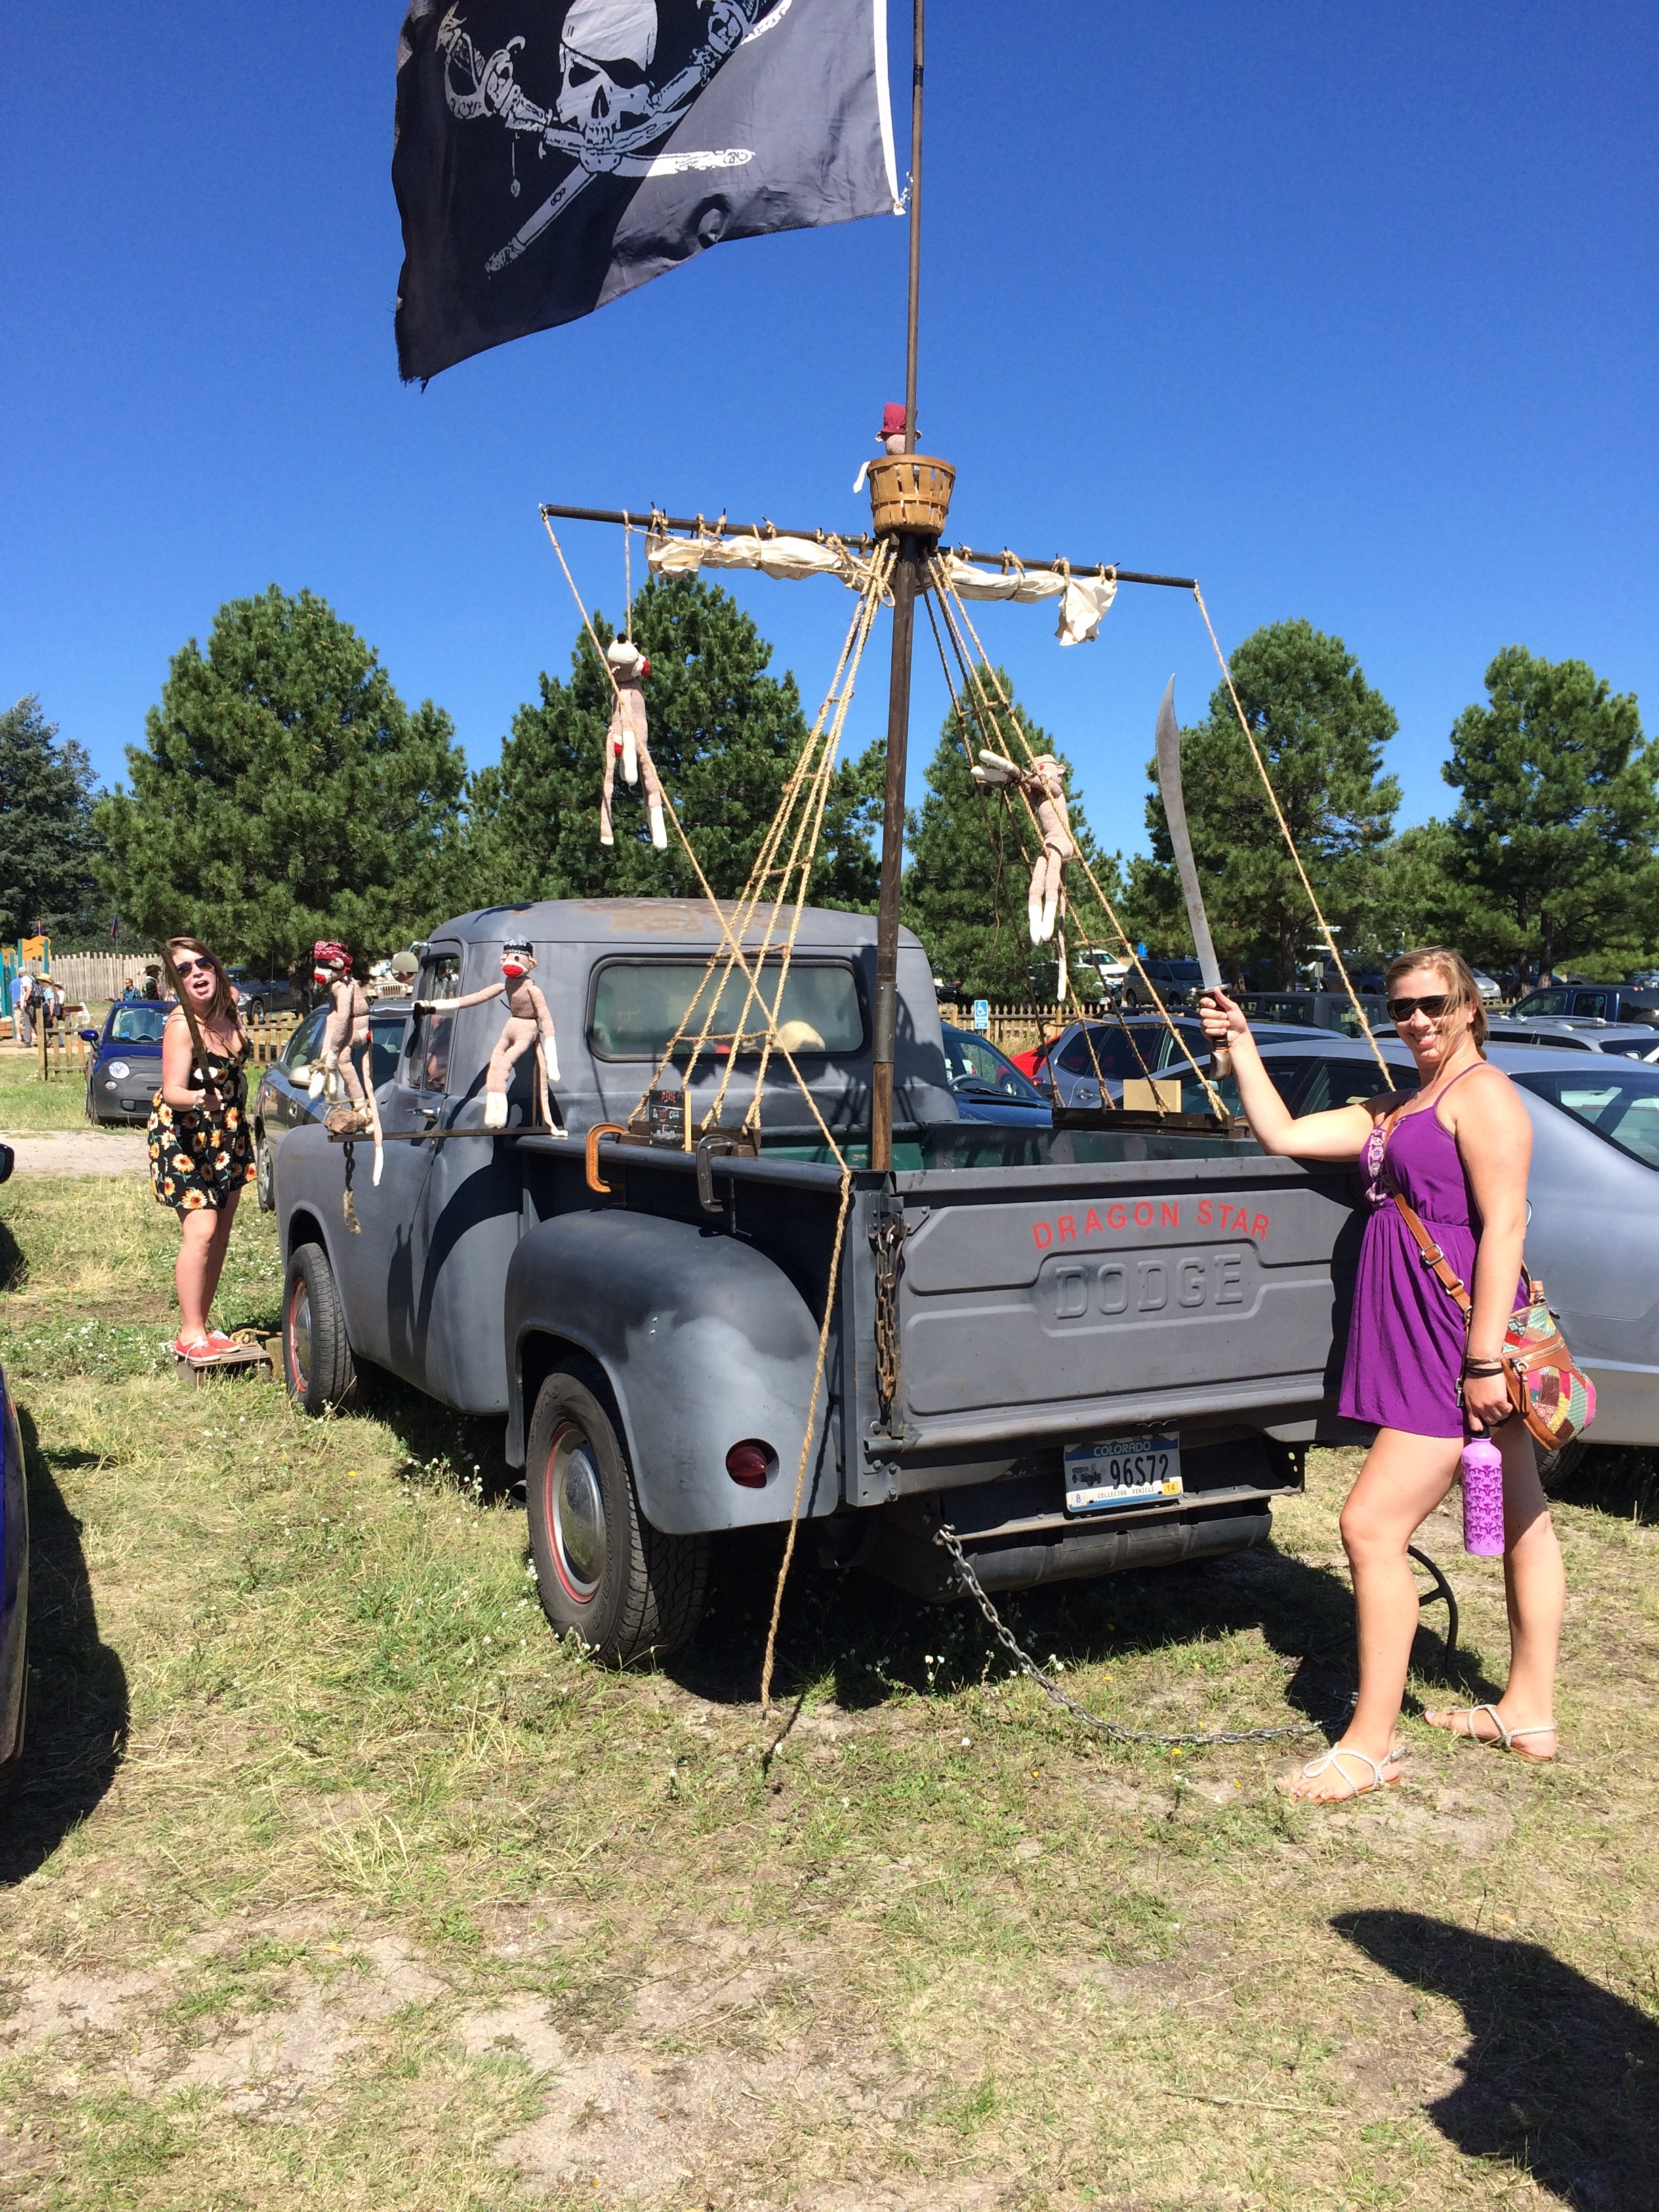 Coolest Pirate Truck ever next to a couple of my favorite ladies (Kailey and Chloe)